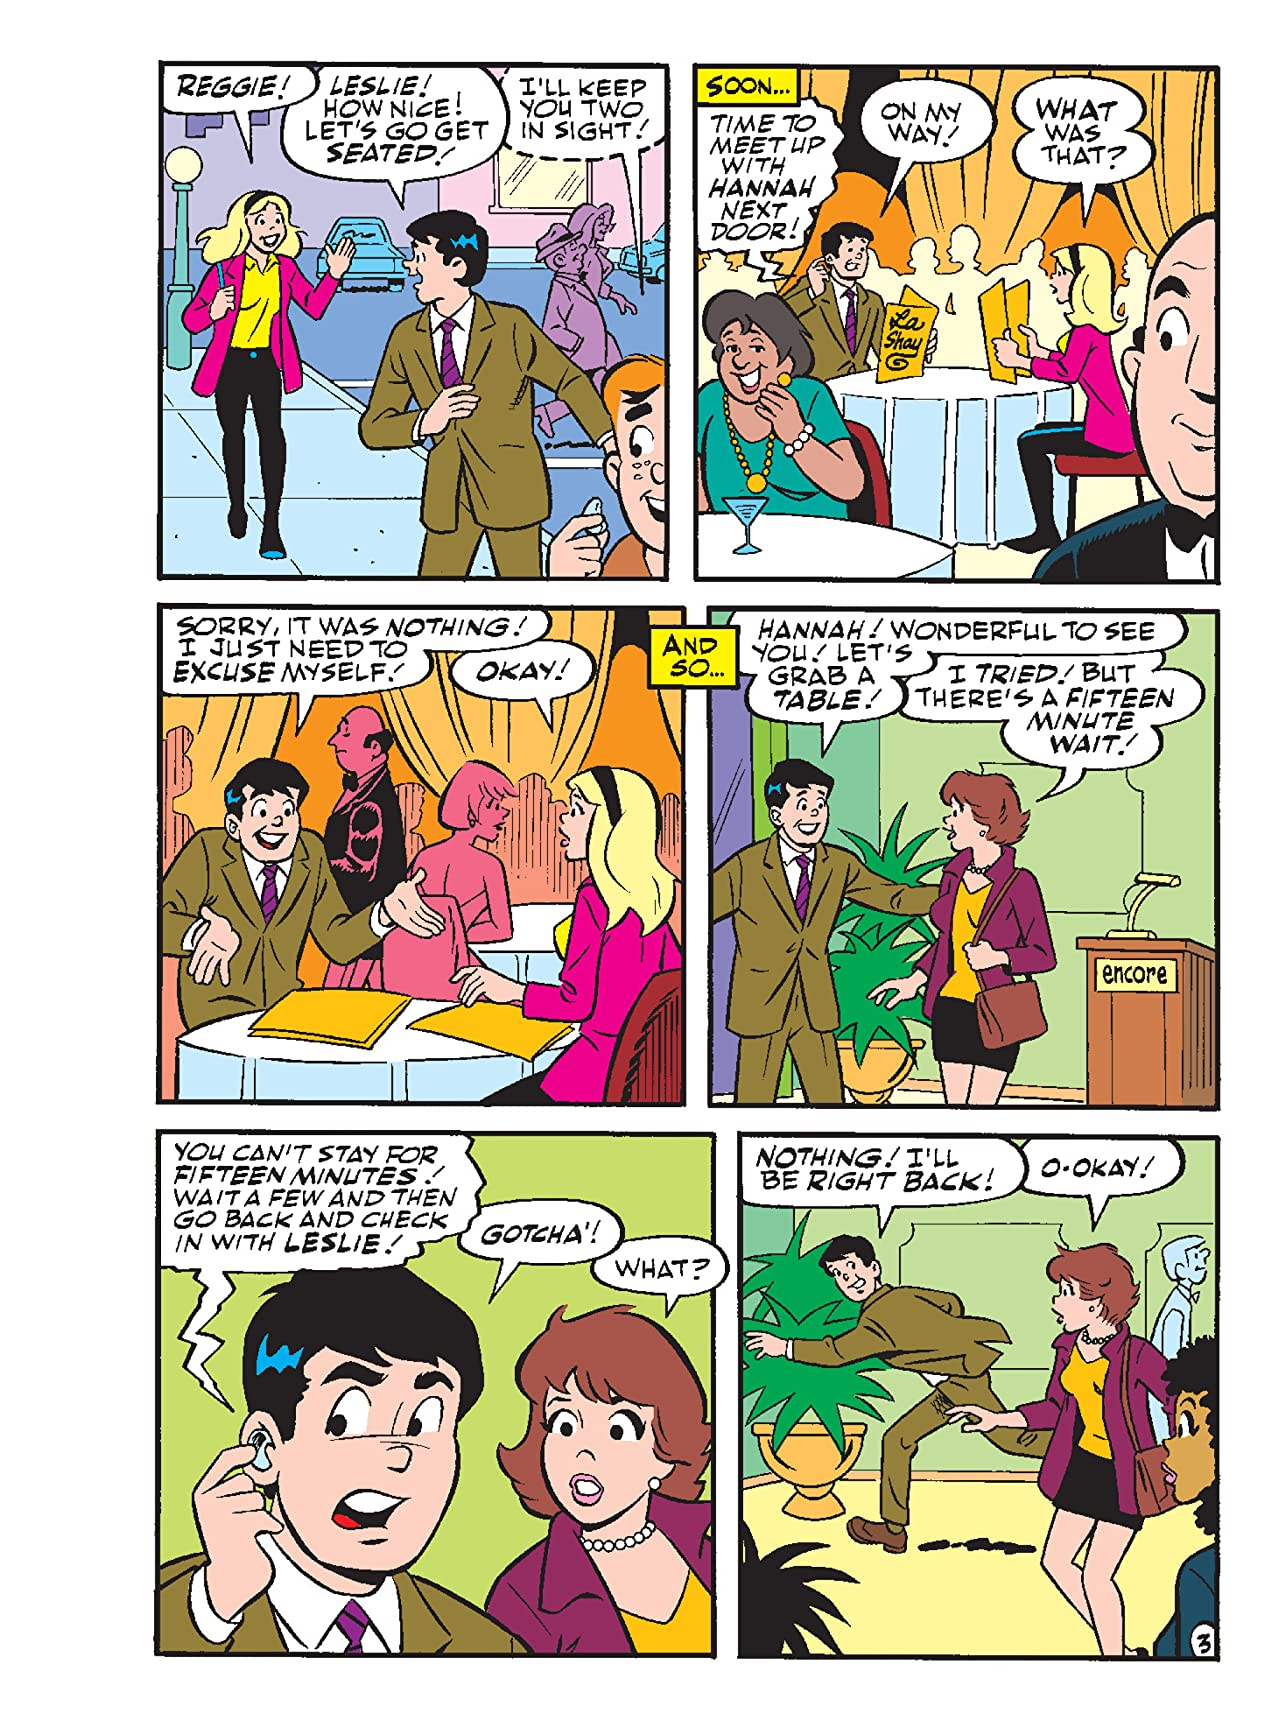 World of Archie Double Digest #95